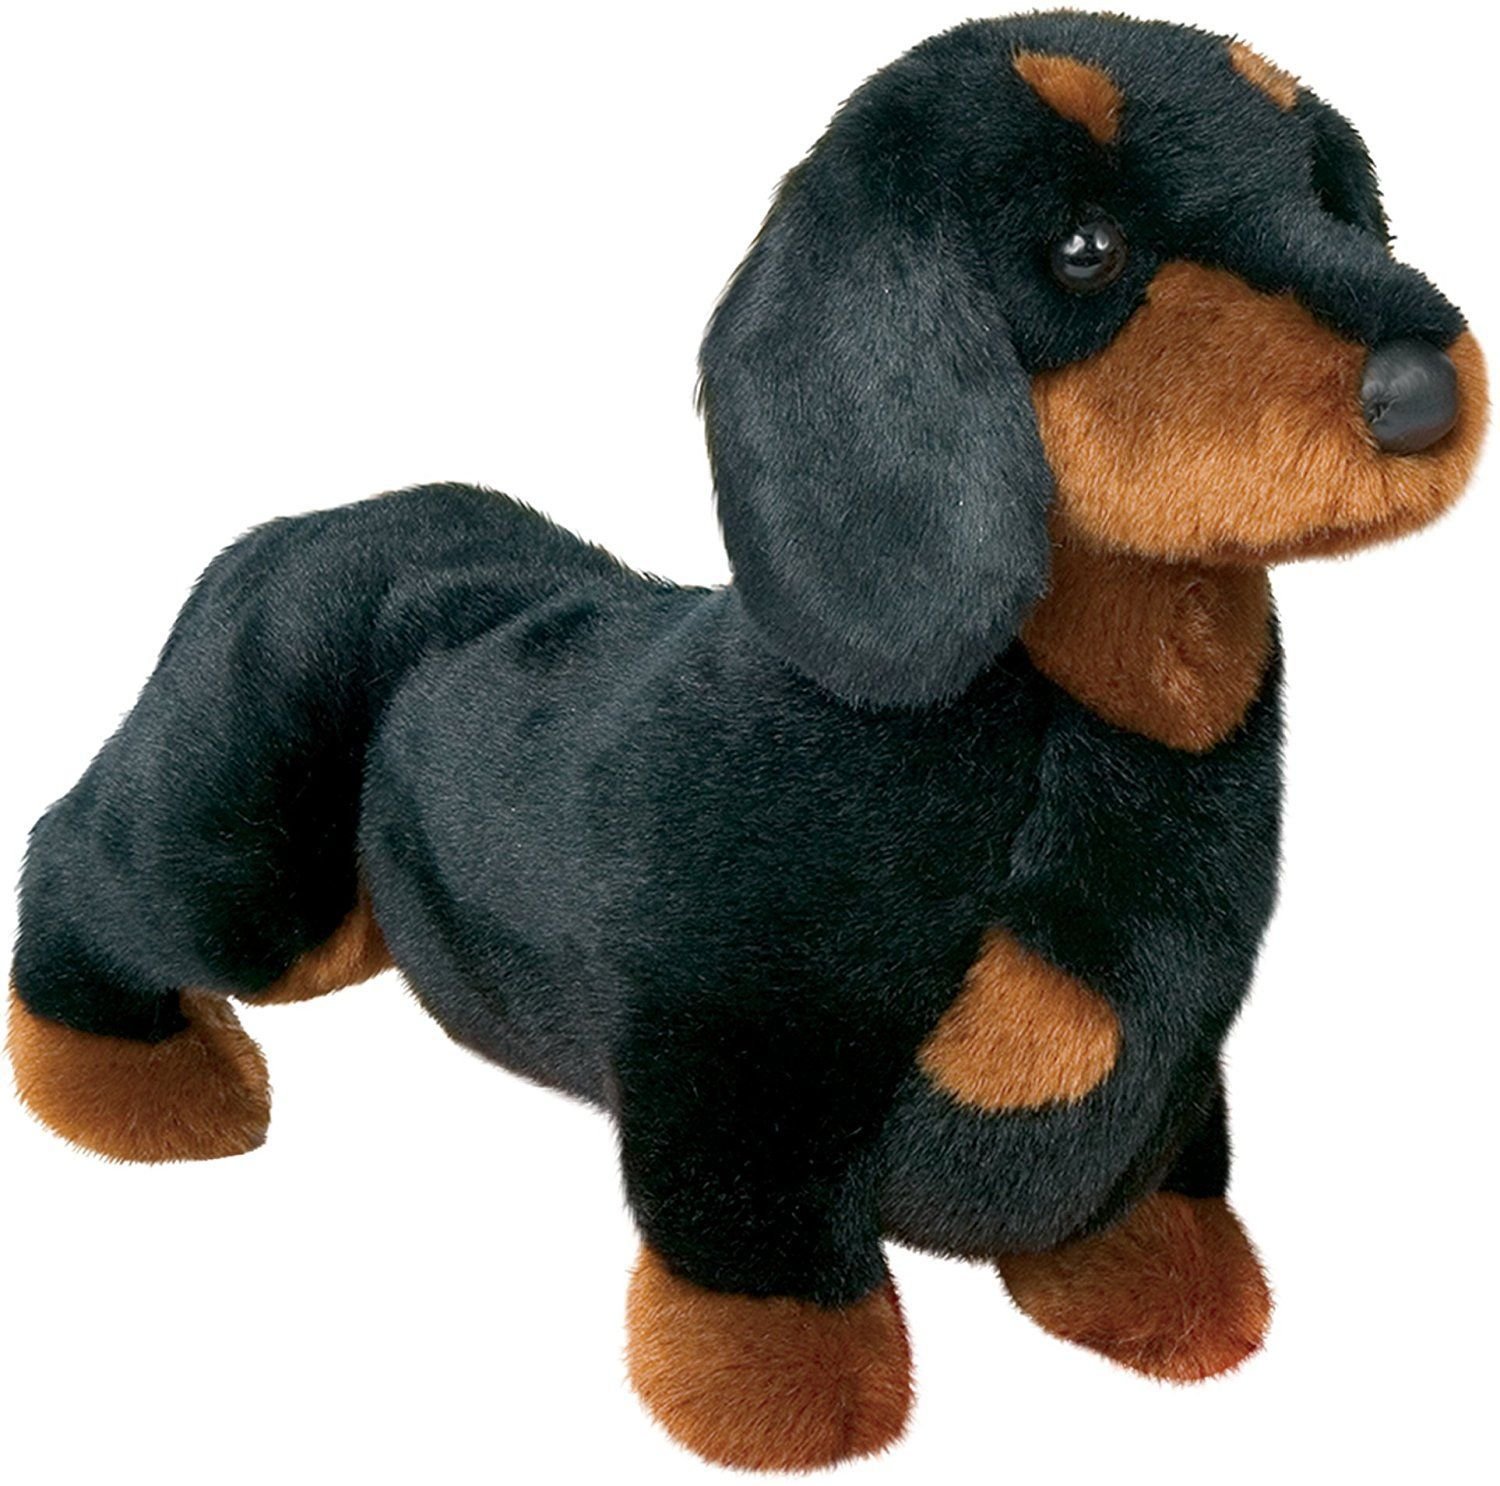 Dachshund Stuffed Toy Doxie Wiener Dog Stuffed Plush Toy Cute